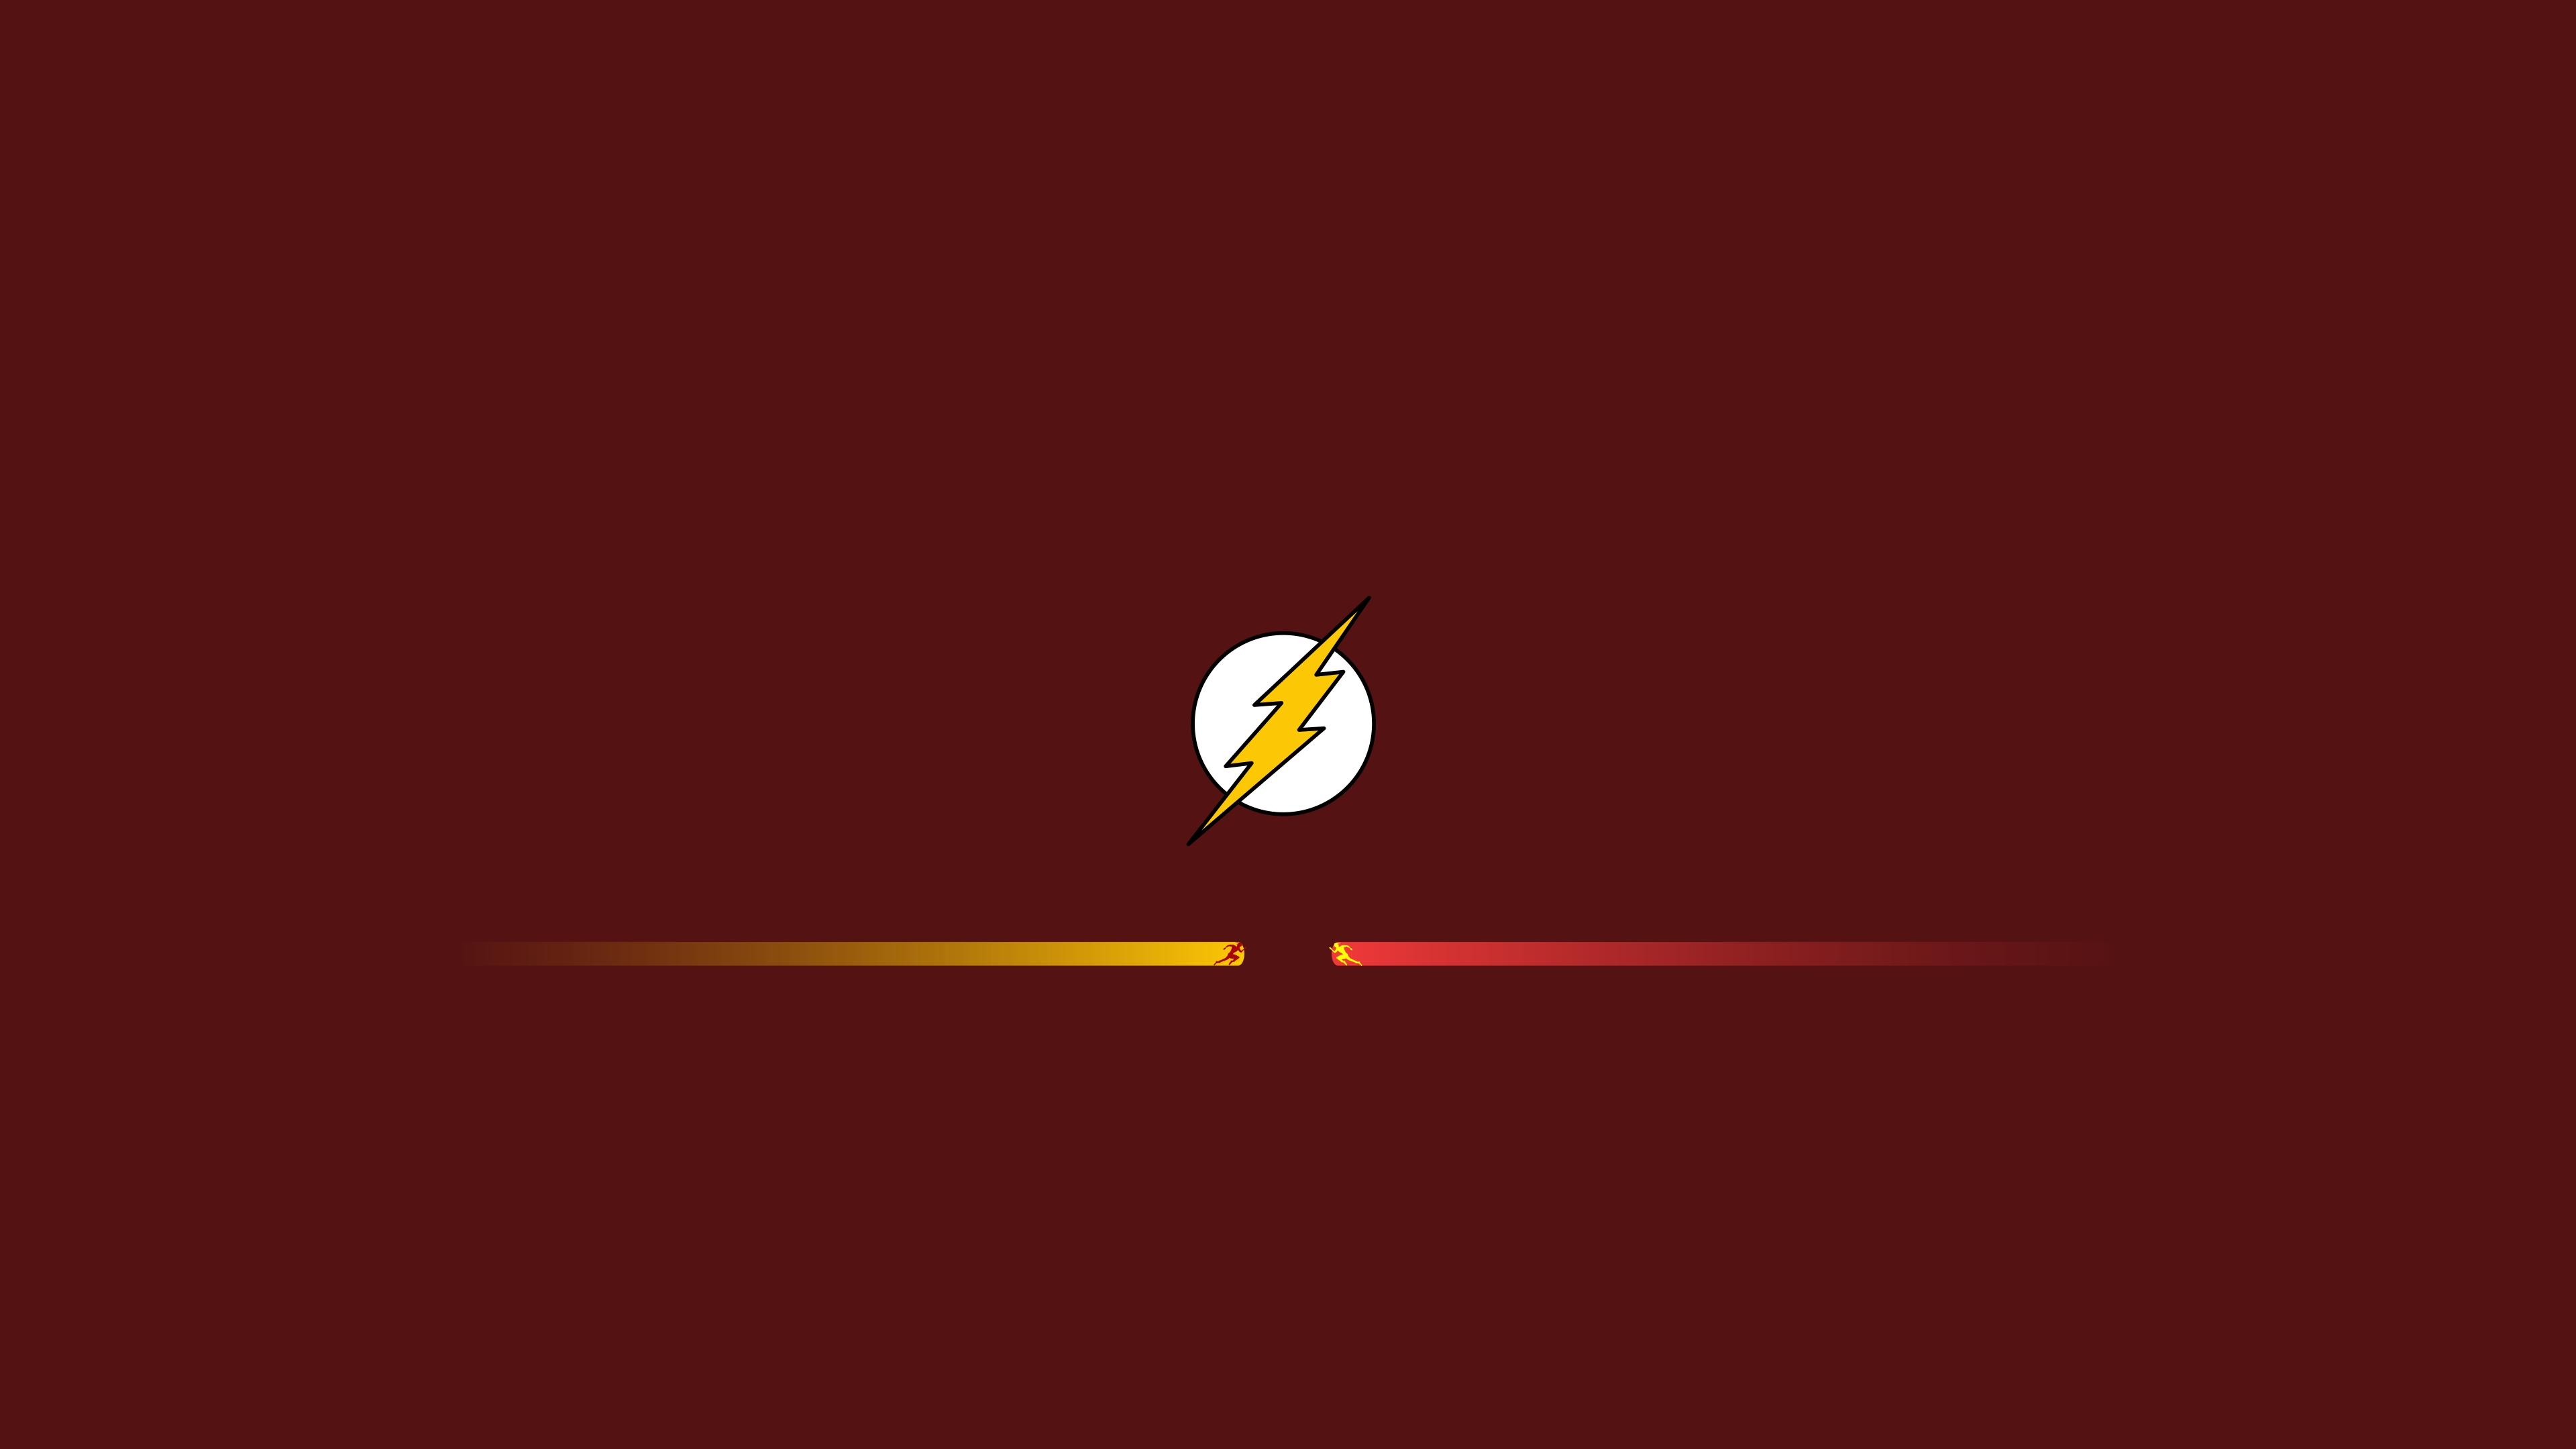 Wallpaper 4k The Flash And Reverse Flash Minimalism 4k Wallpapers